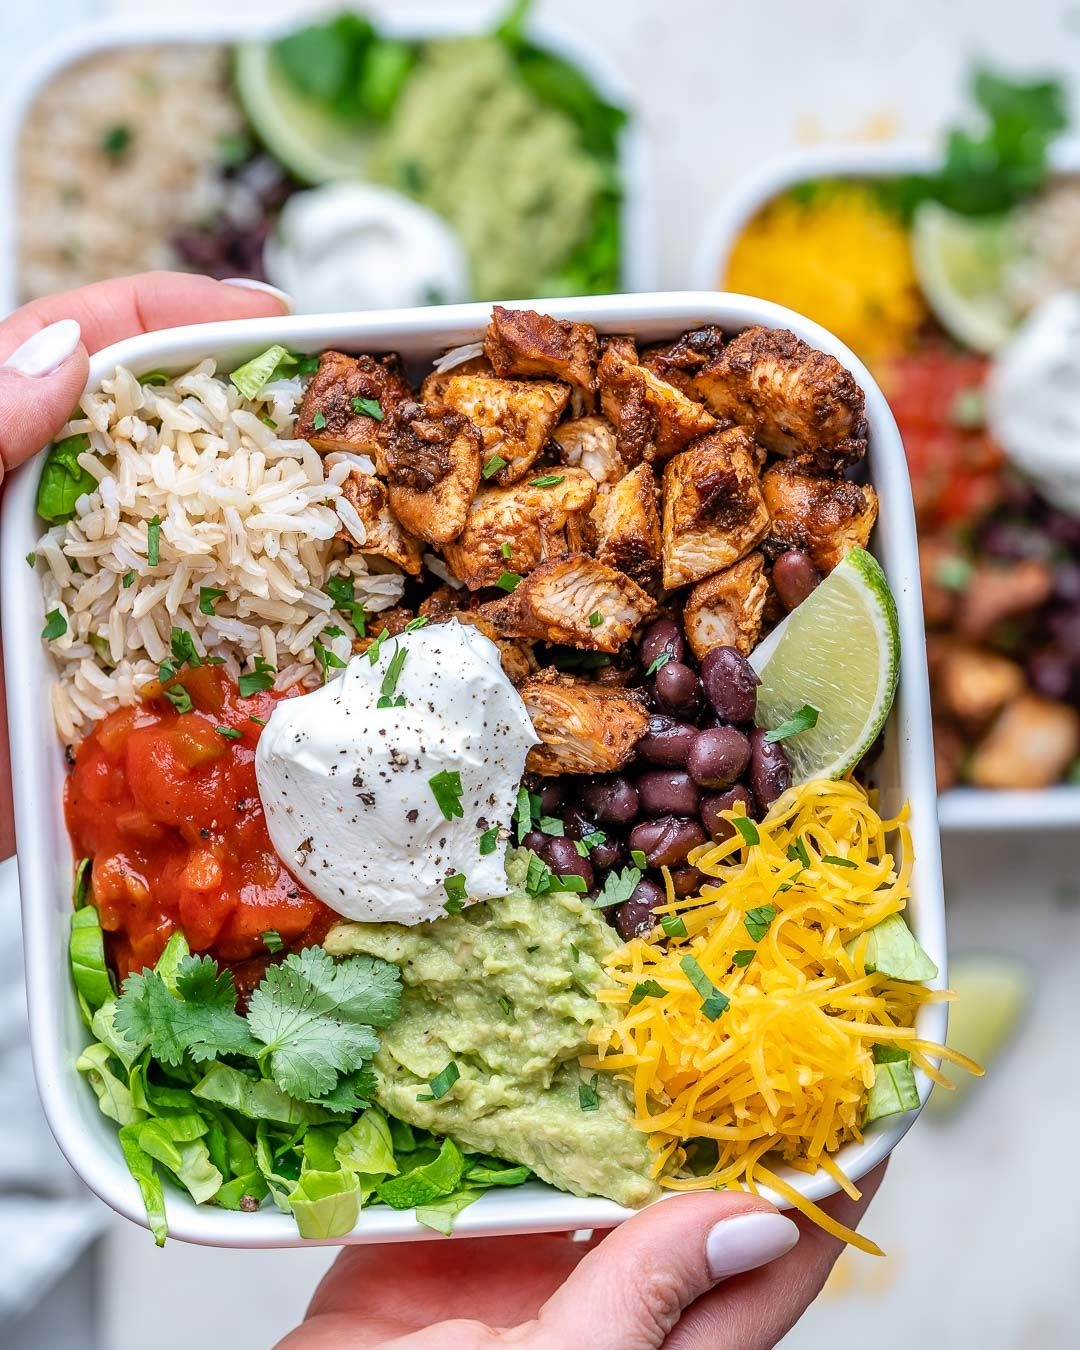 Copycat Chipotle Chicken Burrito Bowls CFC Style | Clean Food Crush